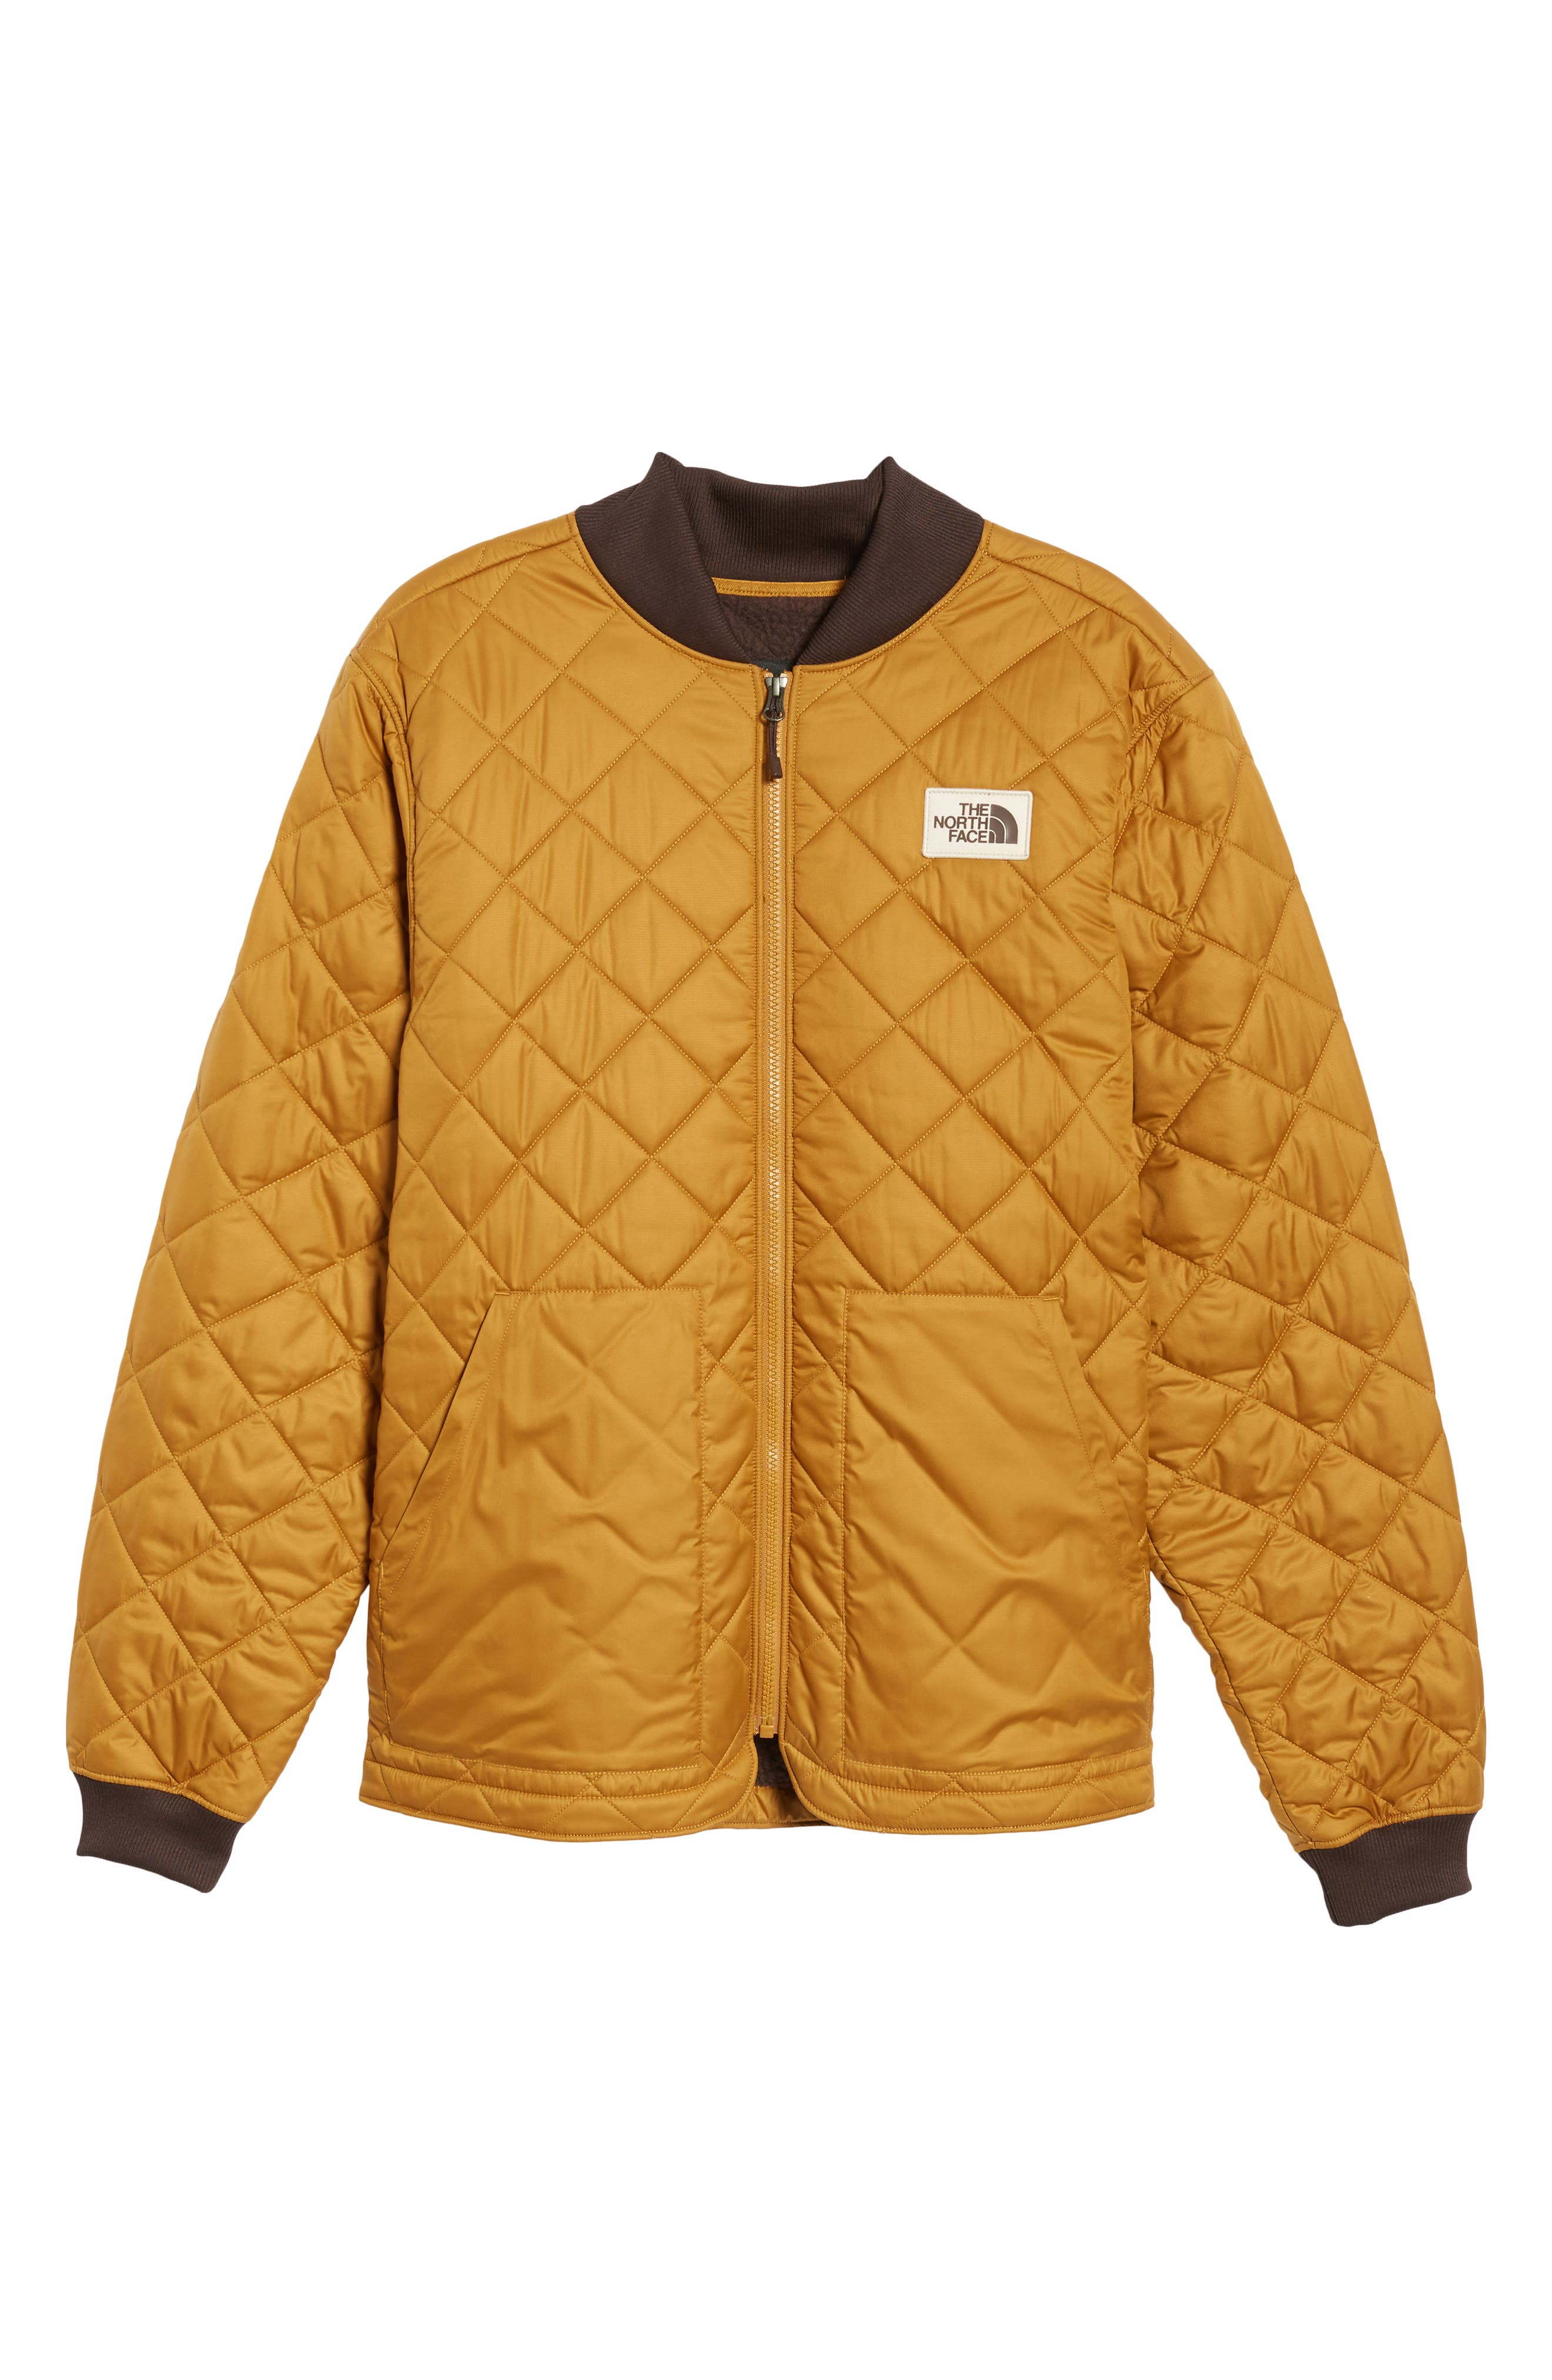 Cuchillo Insulated Jacket,                             Alternate thumbnail 6, color,                             Golden Brown